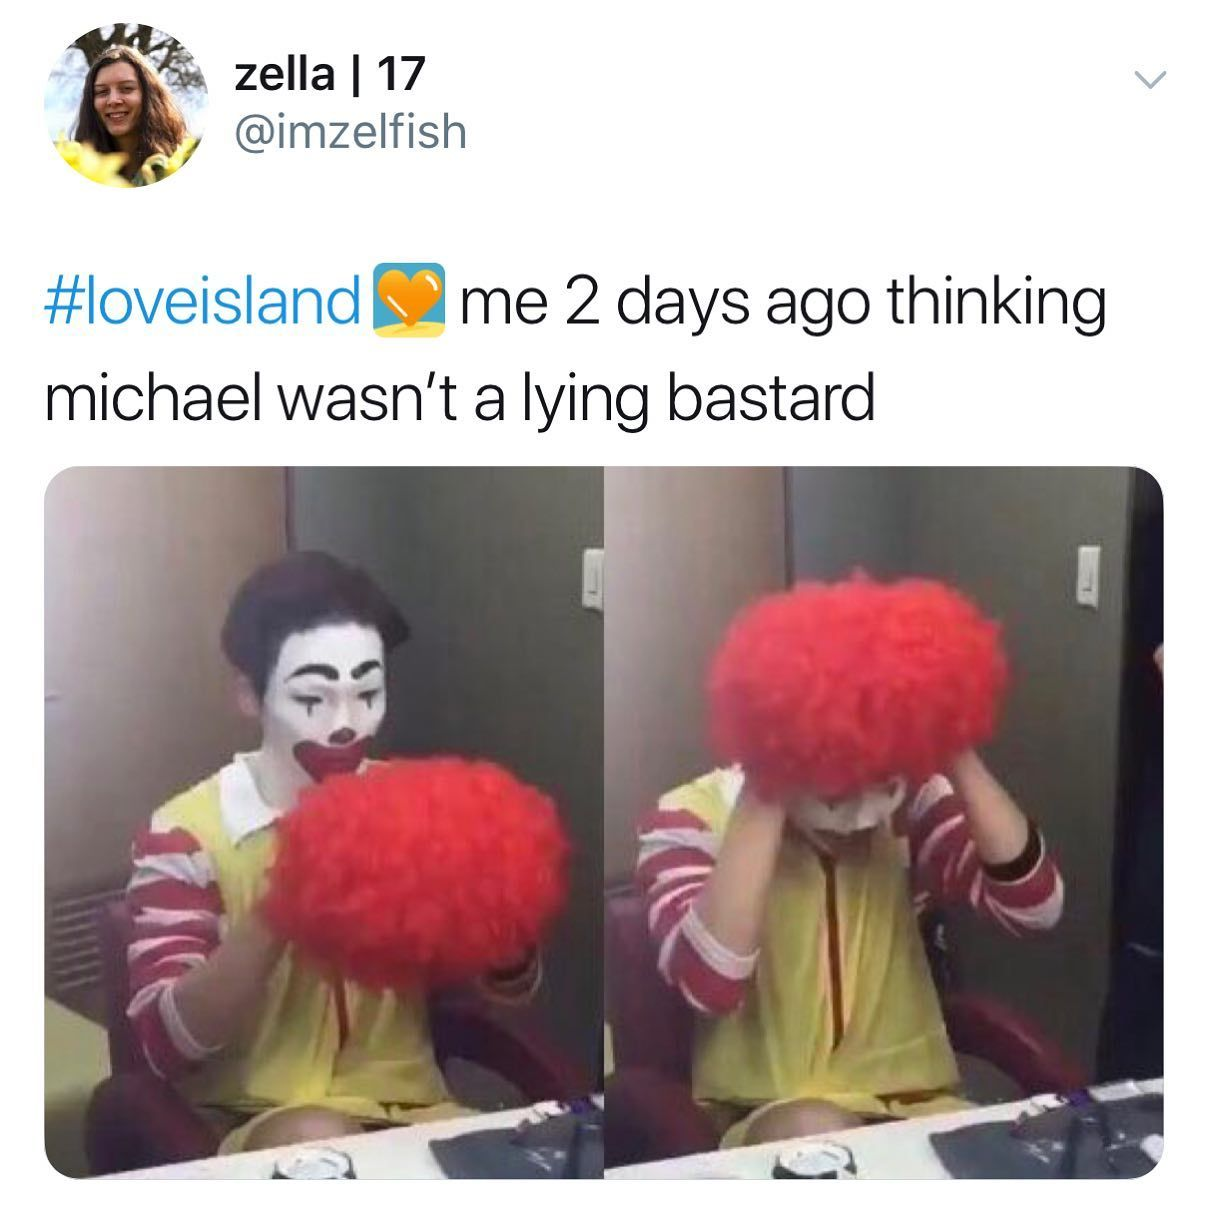 Image may contain: Casa Amor Love Island memes, Love Island, Casa Amor, meme, reaction, tweet, funny, savage, best, Twitter, Michael, Clown, Hair, Human, Person, Performer